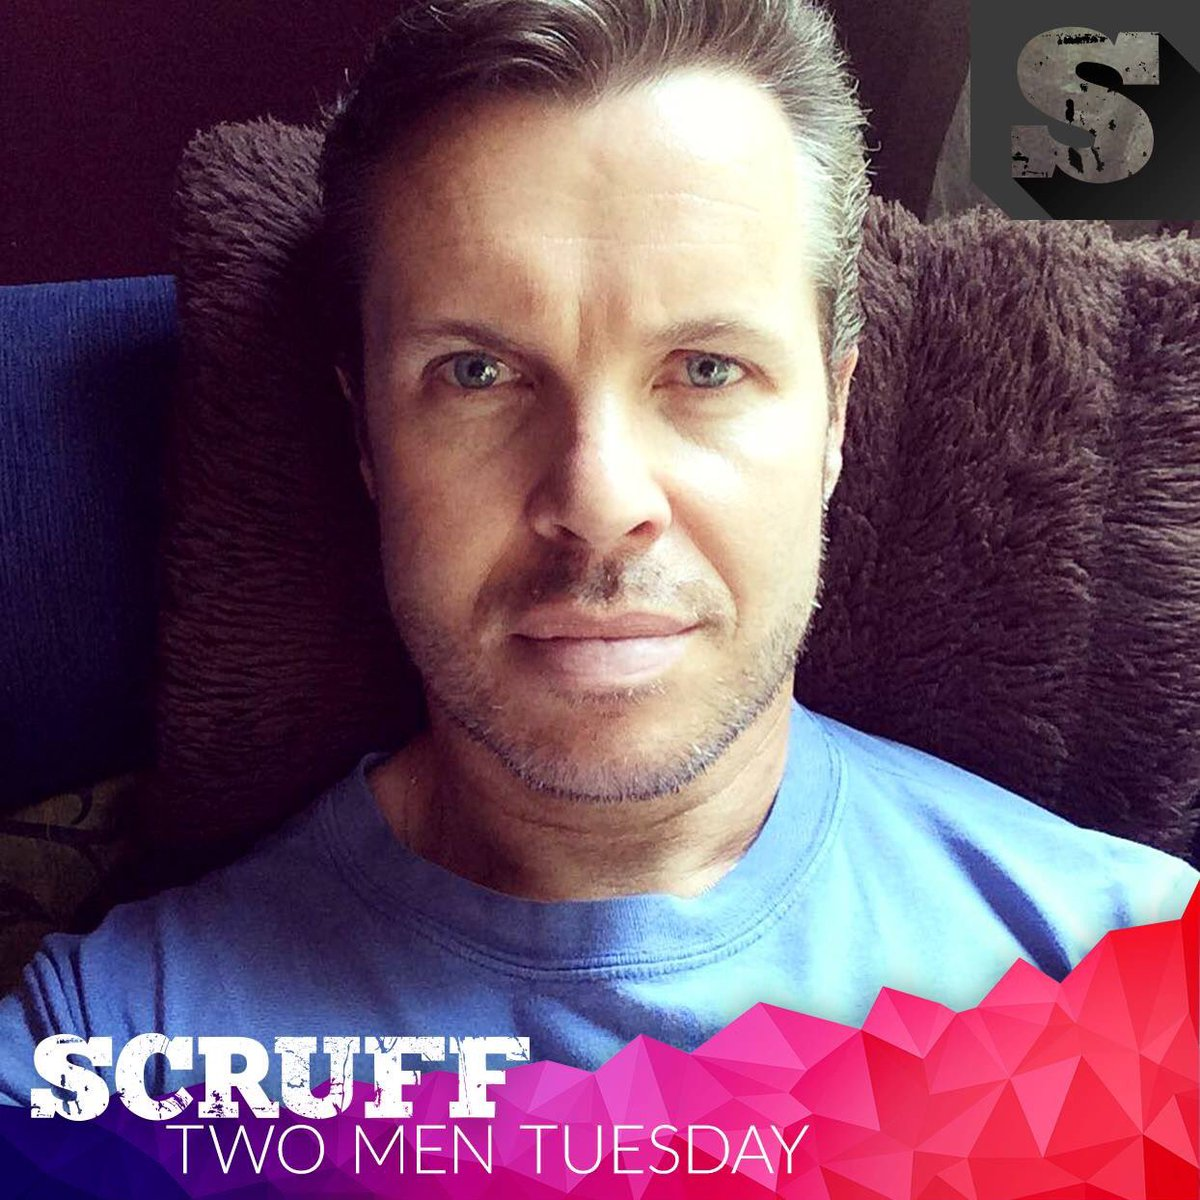 Meet our first Real Guy of #SCRUFF, Liam from Melbourne! Launch or download  SCRUFF today to meet other guys like him. https://t.co/klvfmIUKnm